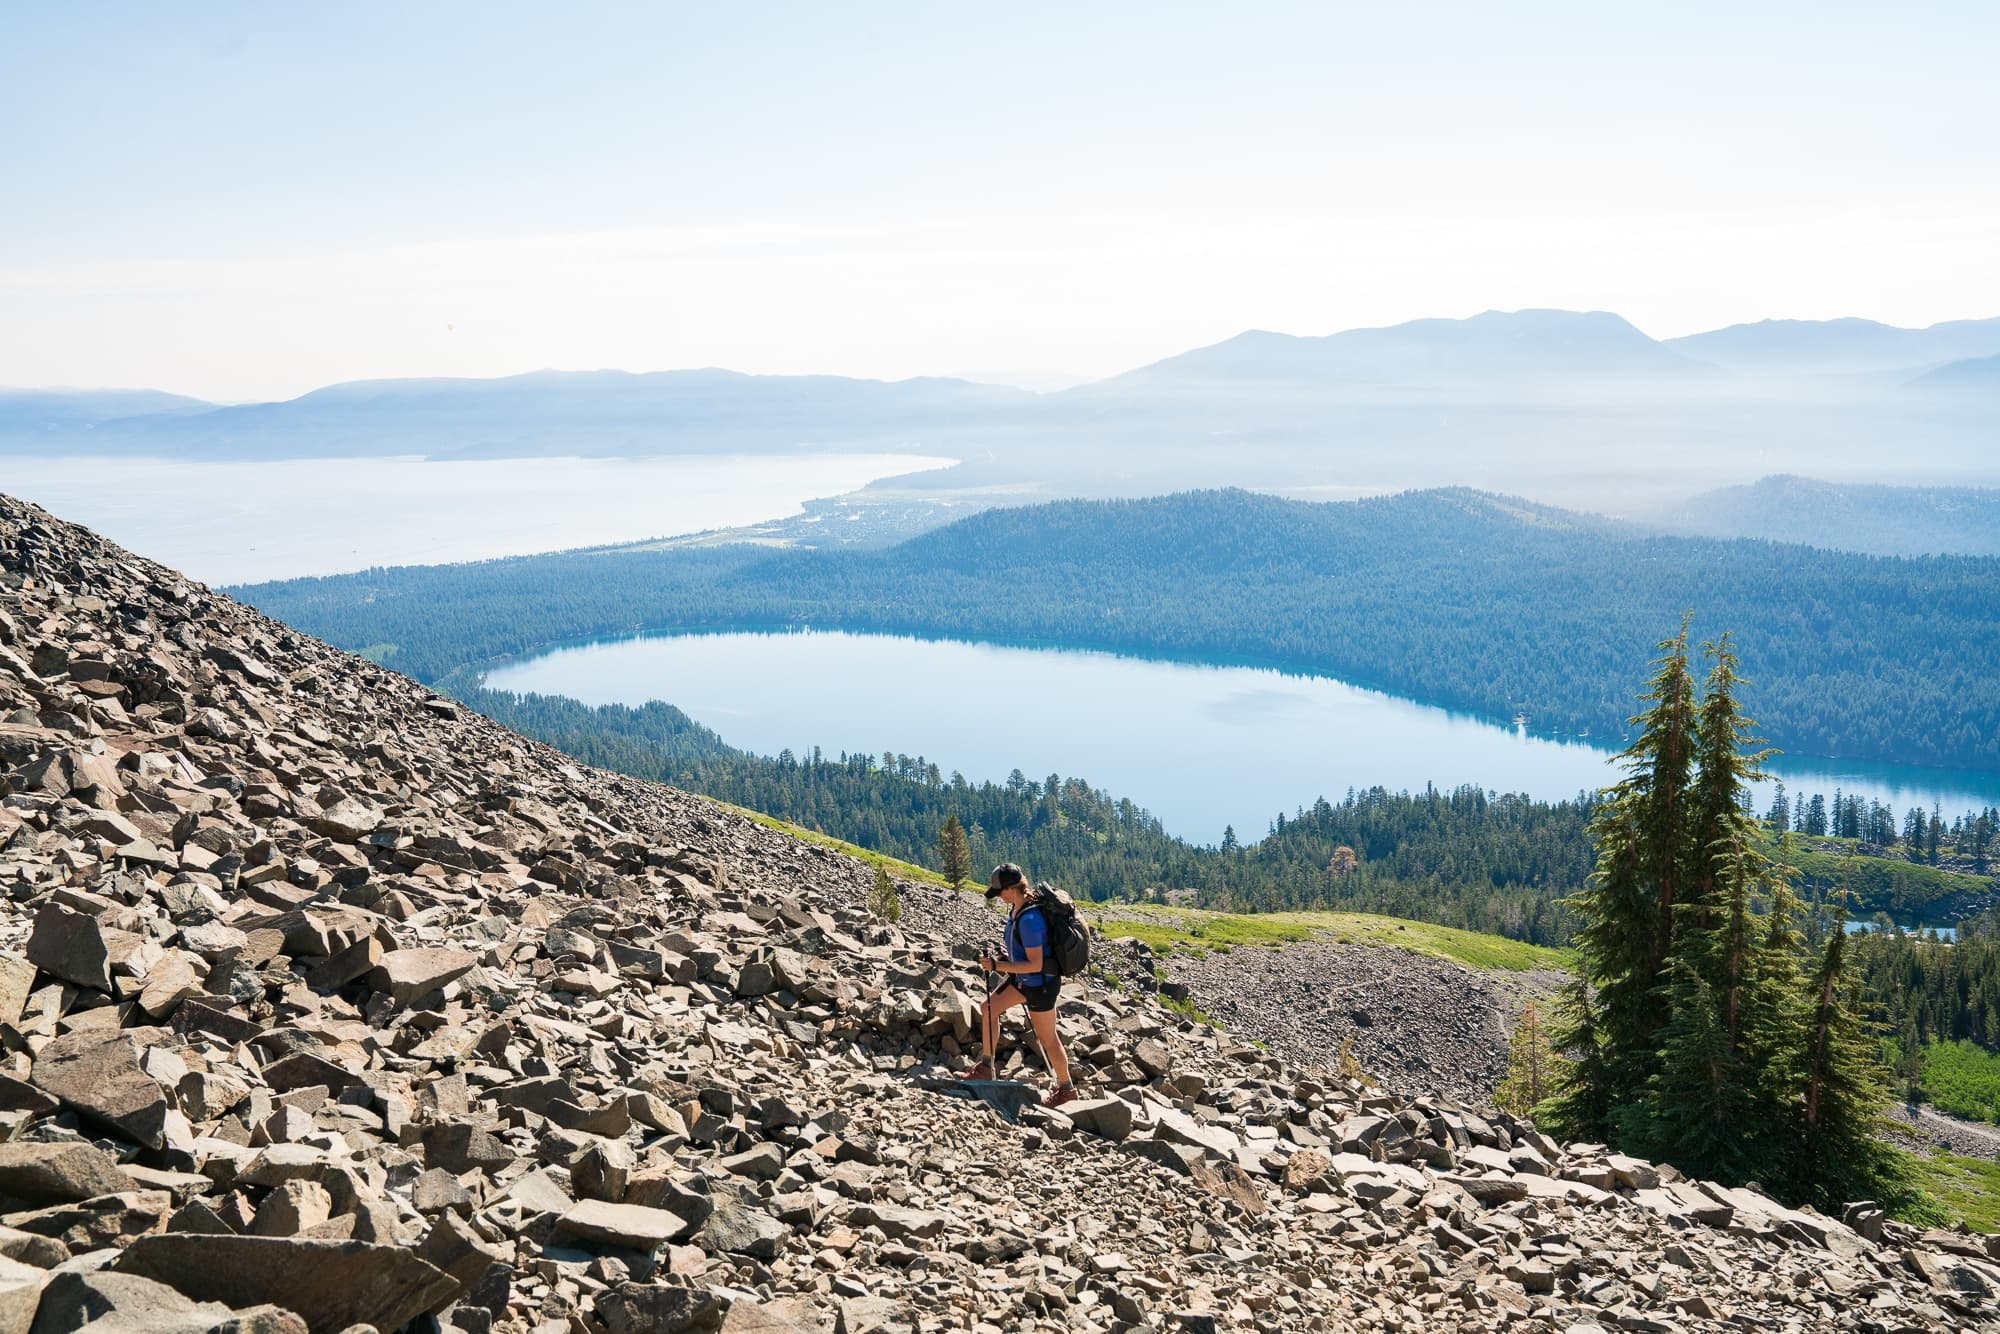 Hike Mount Tallac // Planning an adventure-packed vacation to Lake Tahoe? Here are 12 of the best things to do around Lake Tahoe for the outdoor enthusiast.